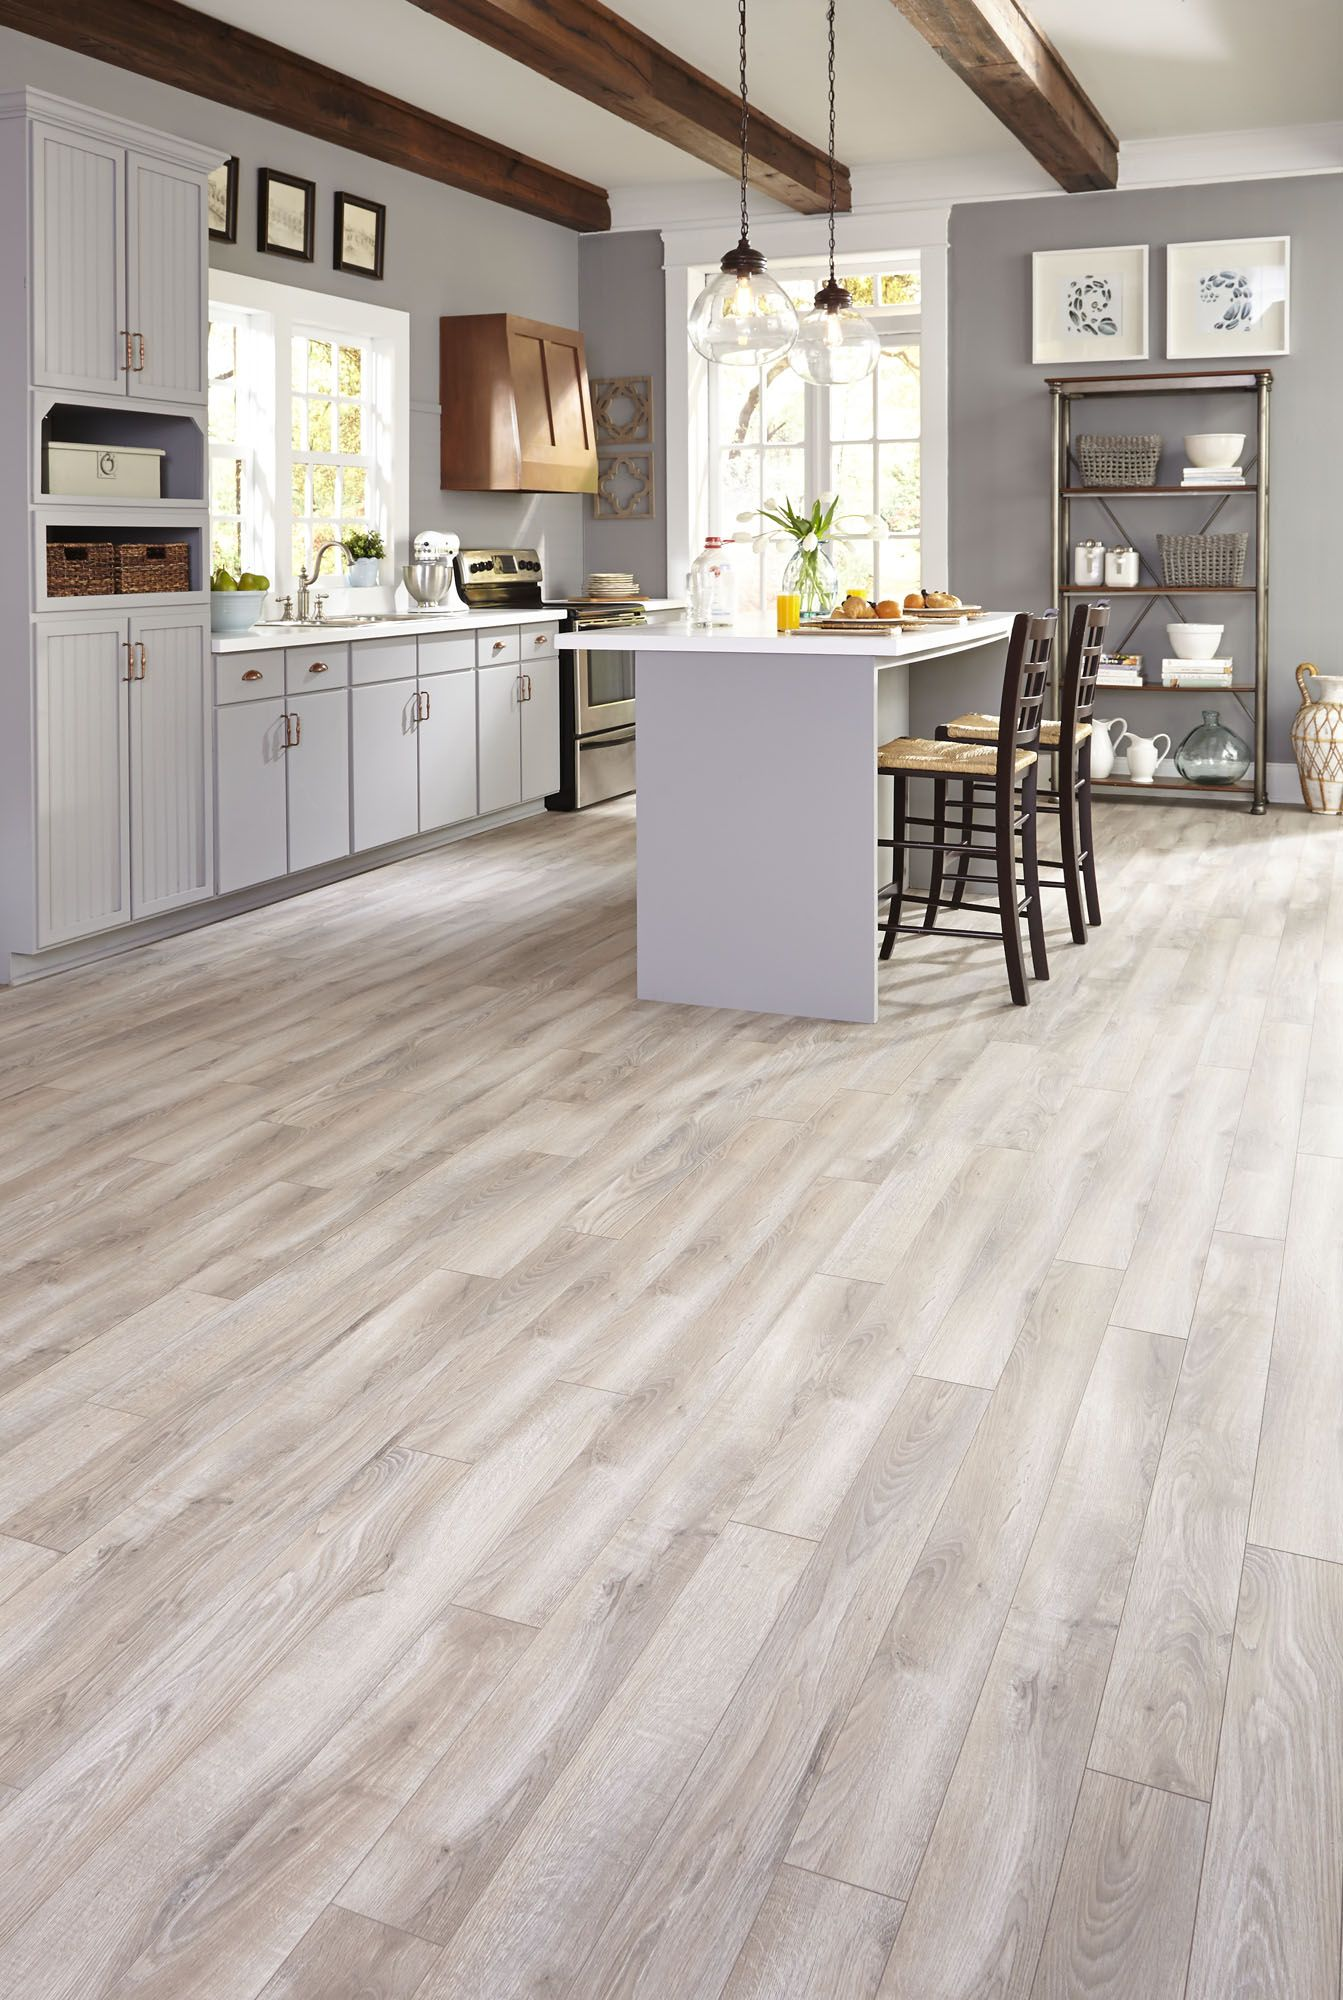 Gray Tones Mixed With Light Creams And Tans Suggest A Floor Worn Over Time Evoking Classic Yet Contemporary Style Check Out This Featured